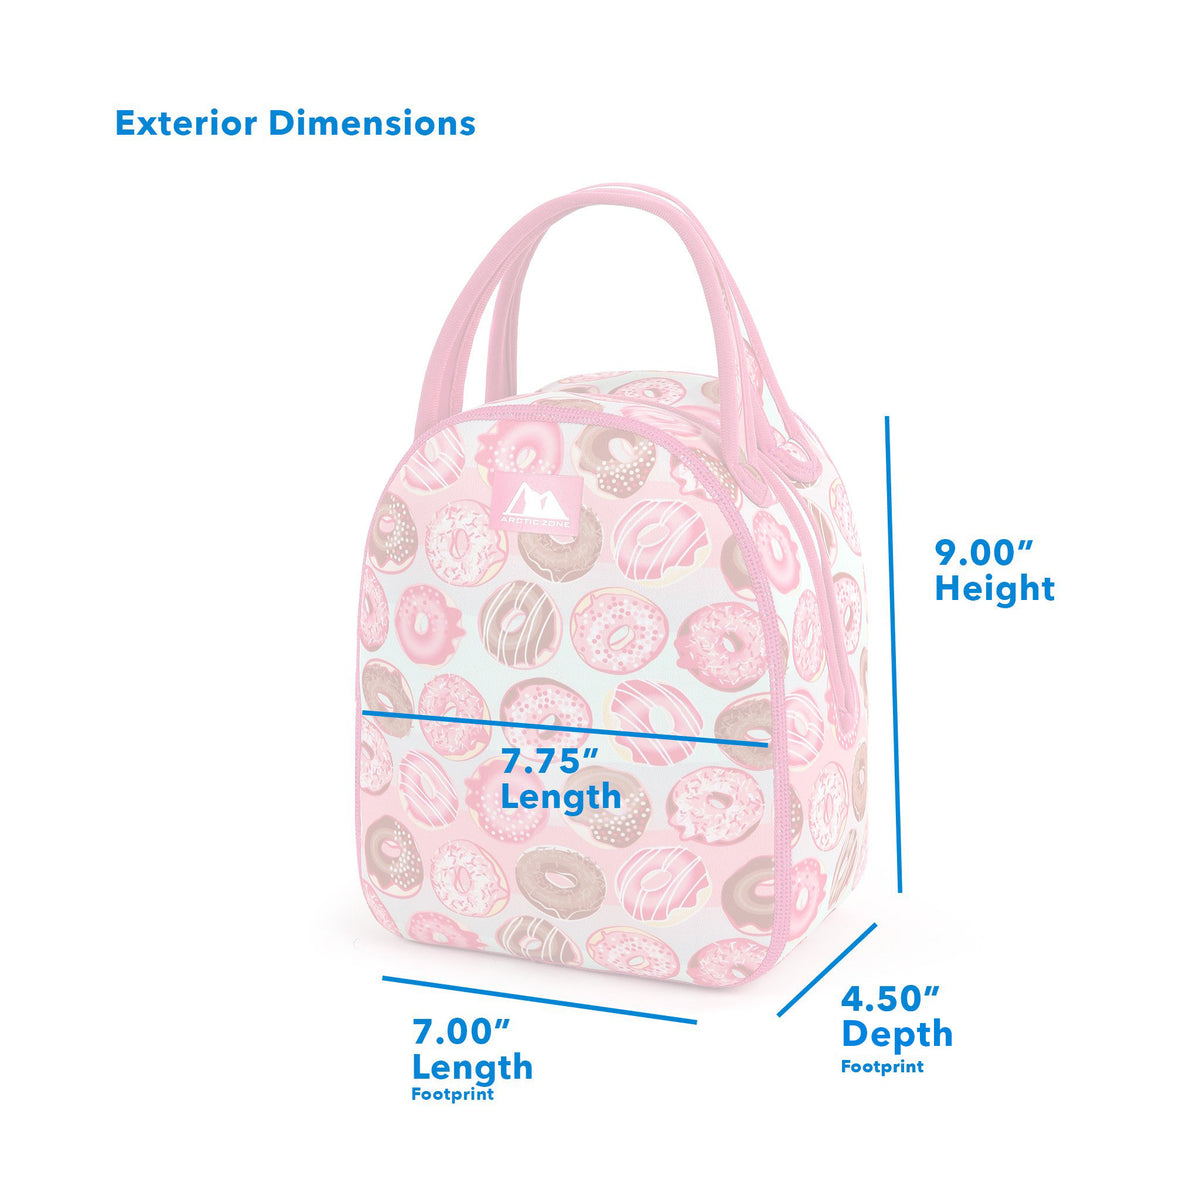 "Arctic Zone® Neoprene Hannah Tote - Dimensions - (L x D x H) 7.00"" x 4.50"" x 9.00"", Half way length 7.75"""